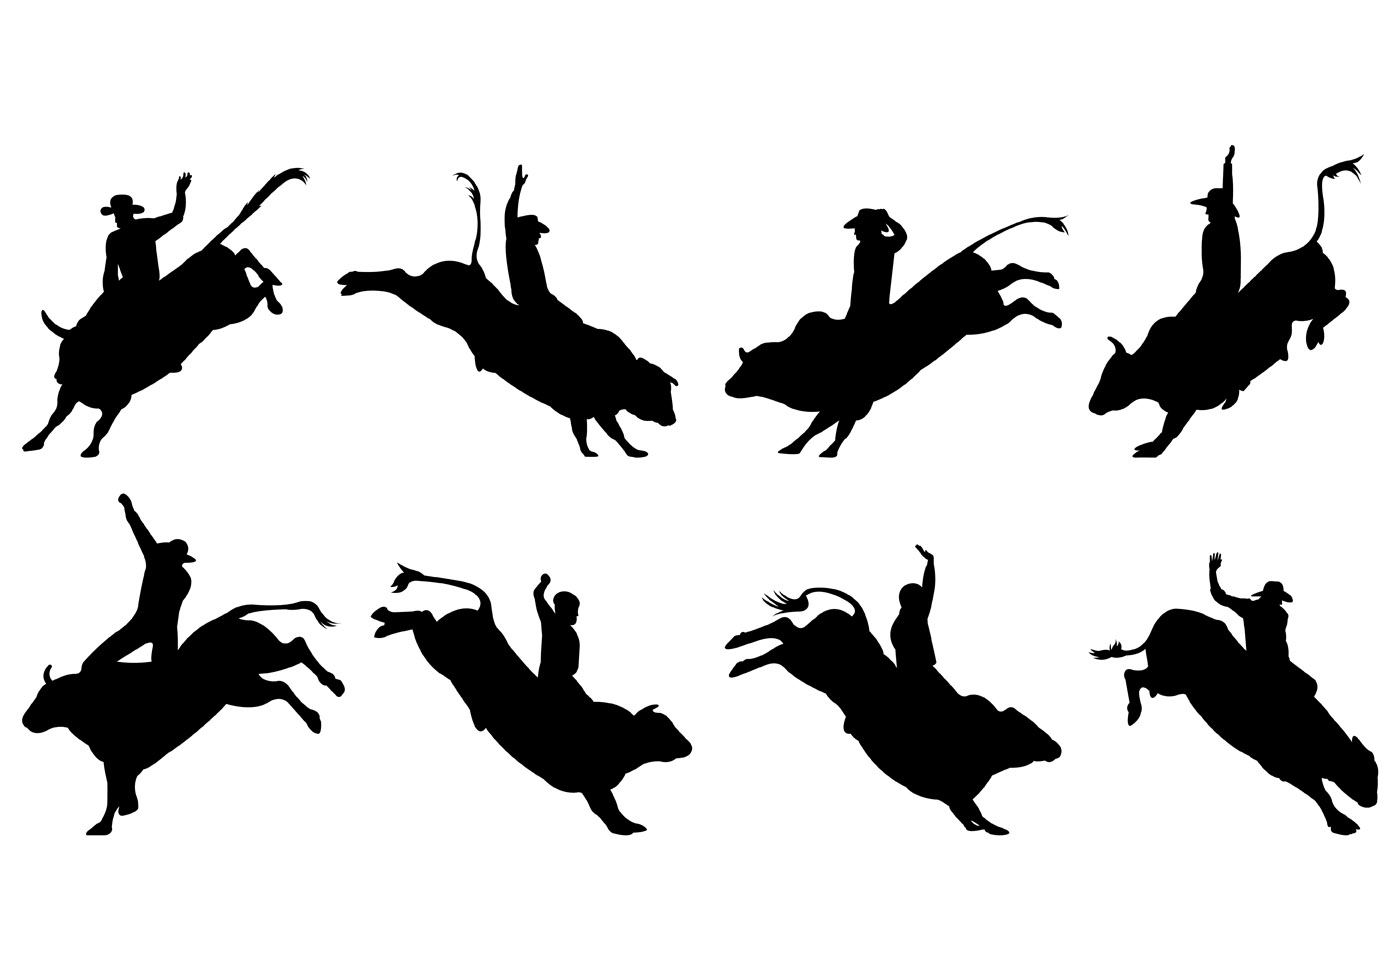 Bull Rider Silhouettes - Download Free Vectors, Clipart ...